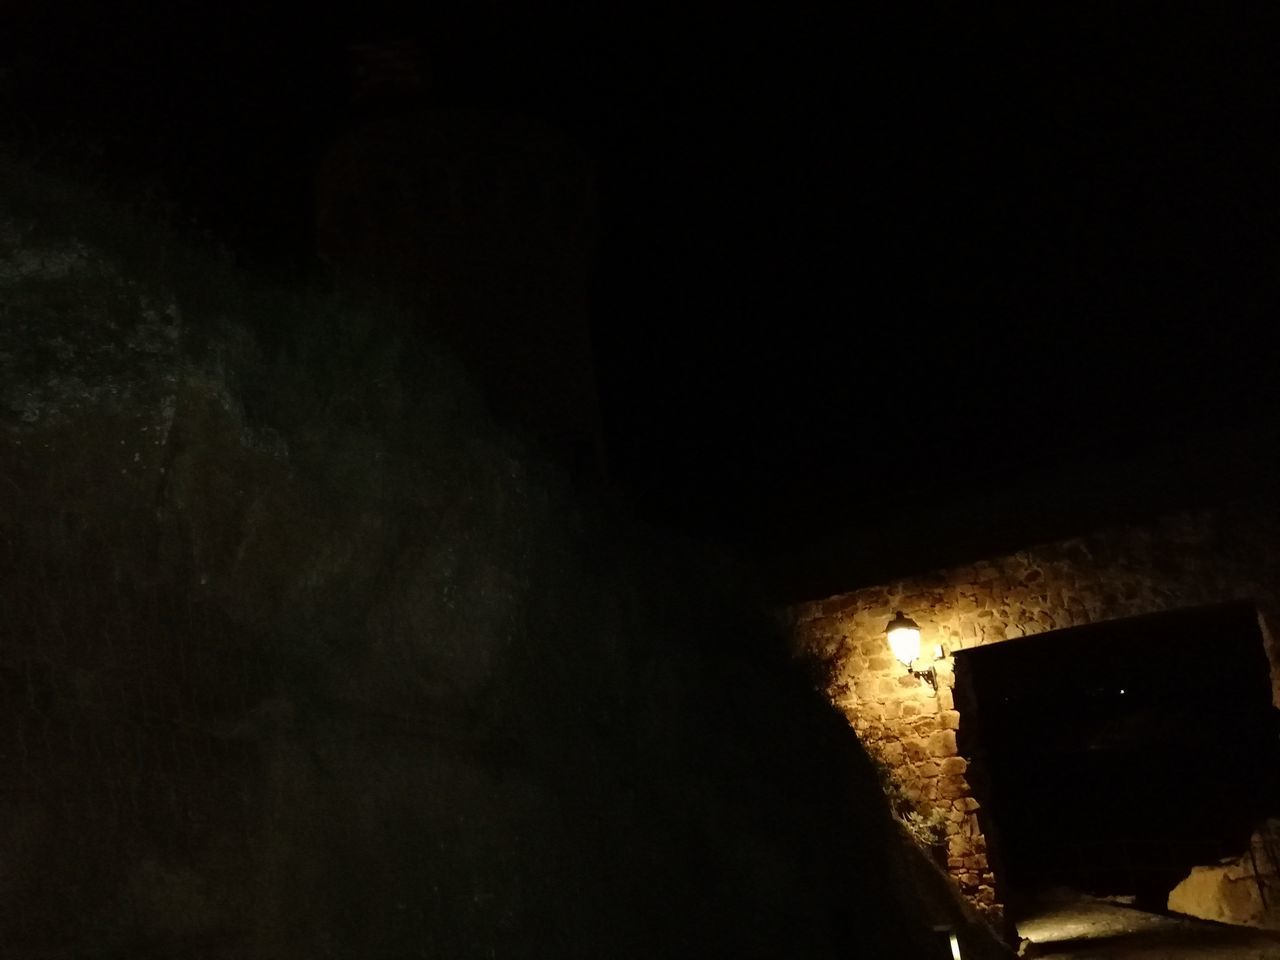 indoors, dark, architecture, night, no people, illuminated, built structure, old, history, the past, copy space, low angle view, light - natural phenomenon, wall - building feature, nature, building, domestic room, abandoned, run-down